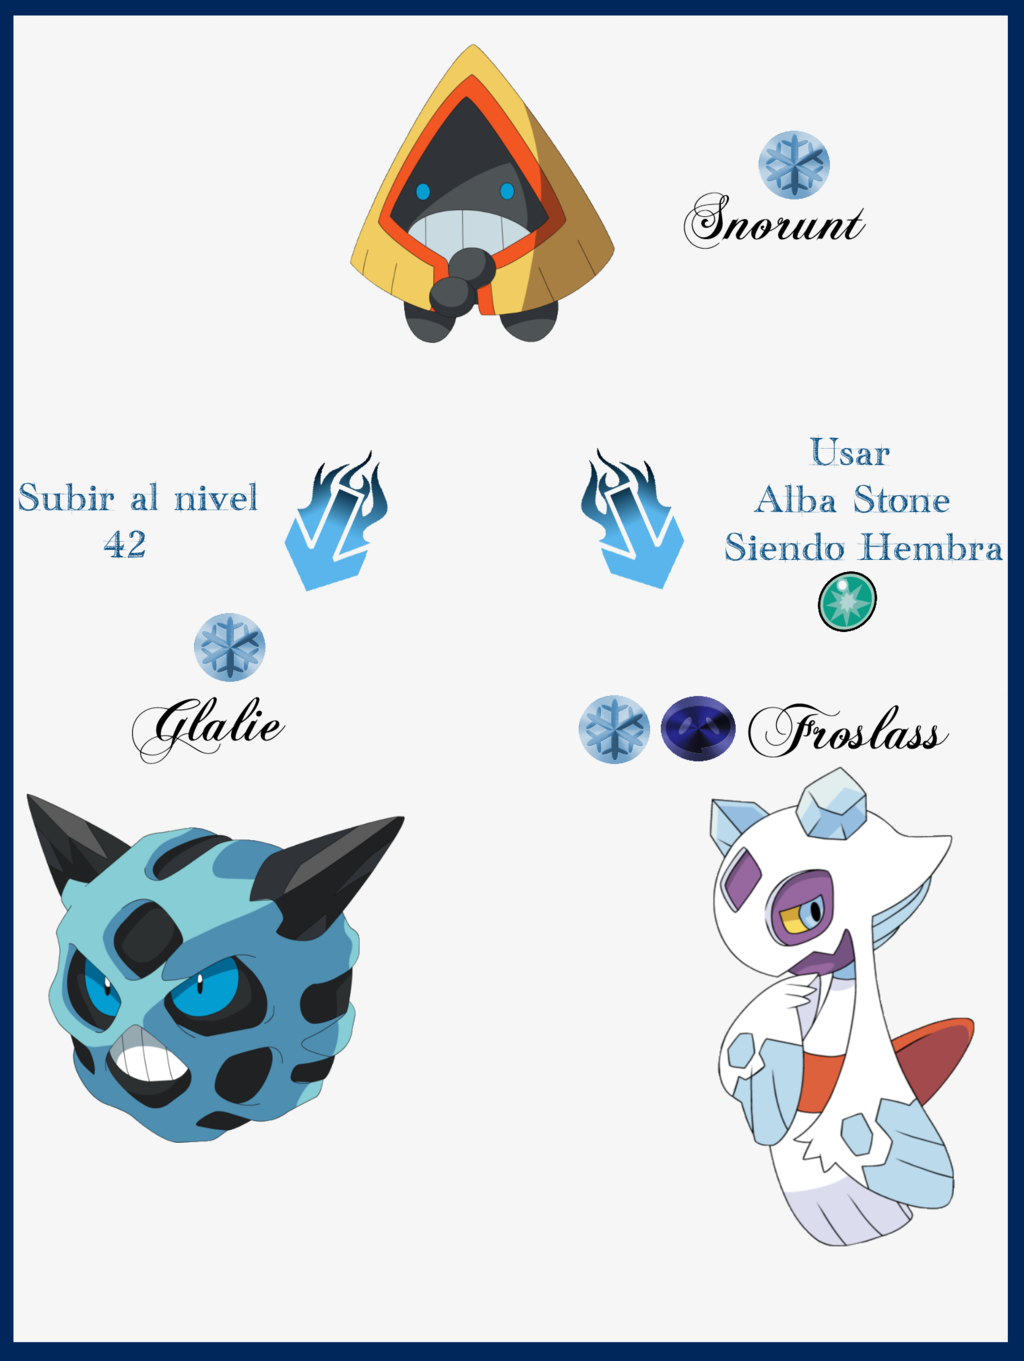 175 Snorunt Evoluciones by Maxconnery on DeviantArt